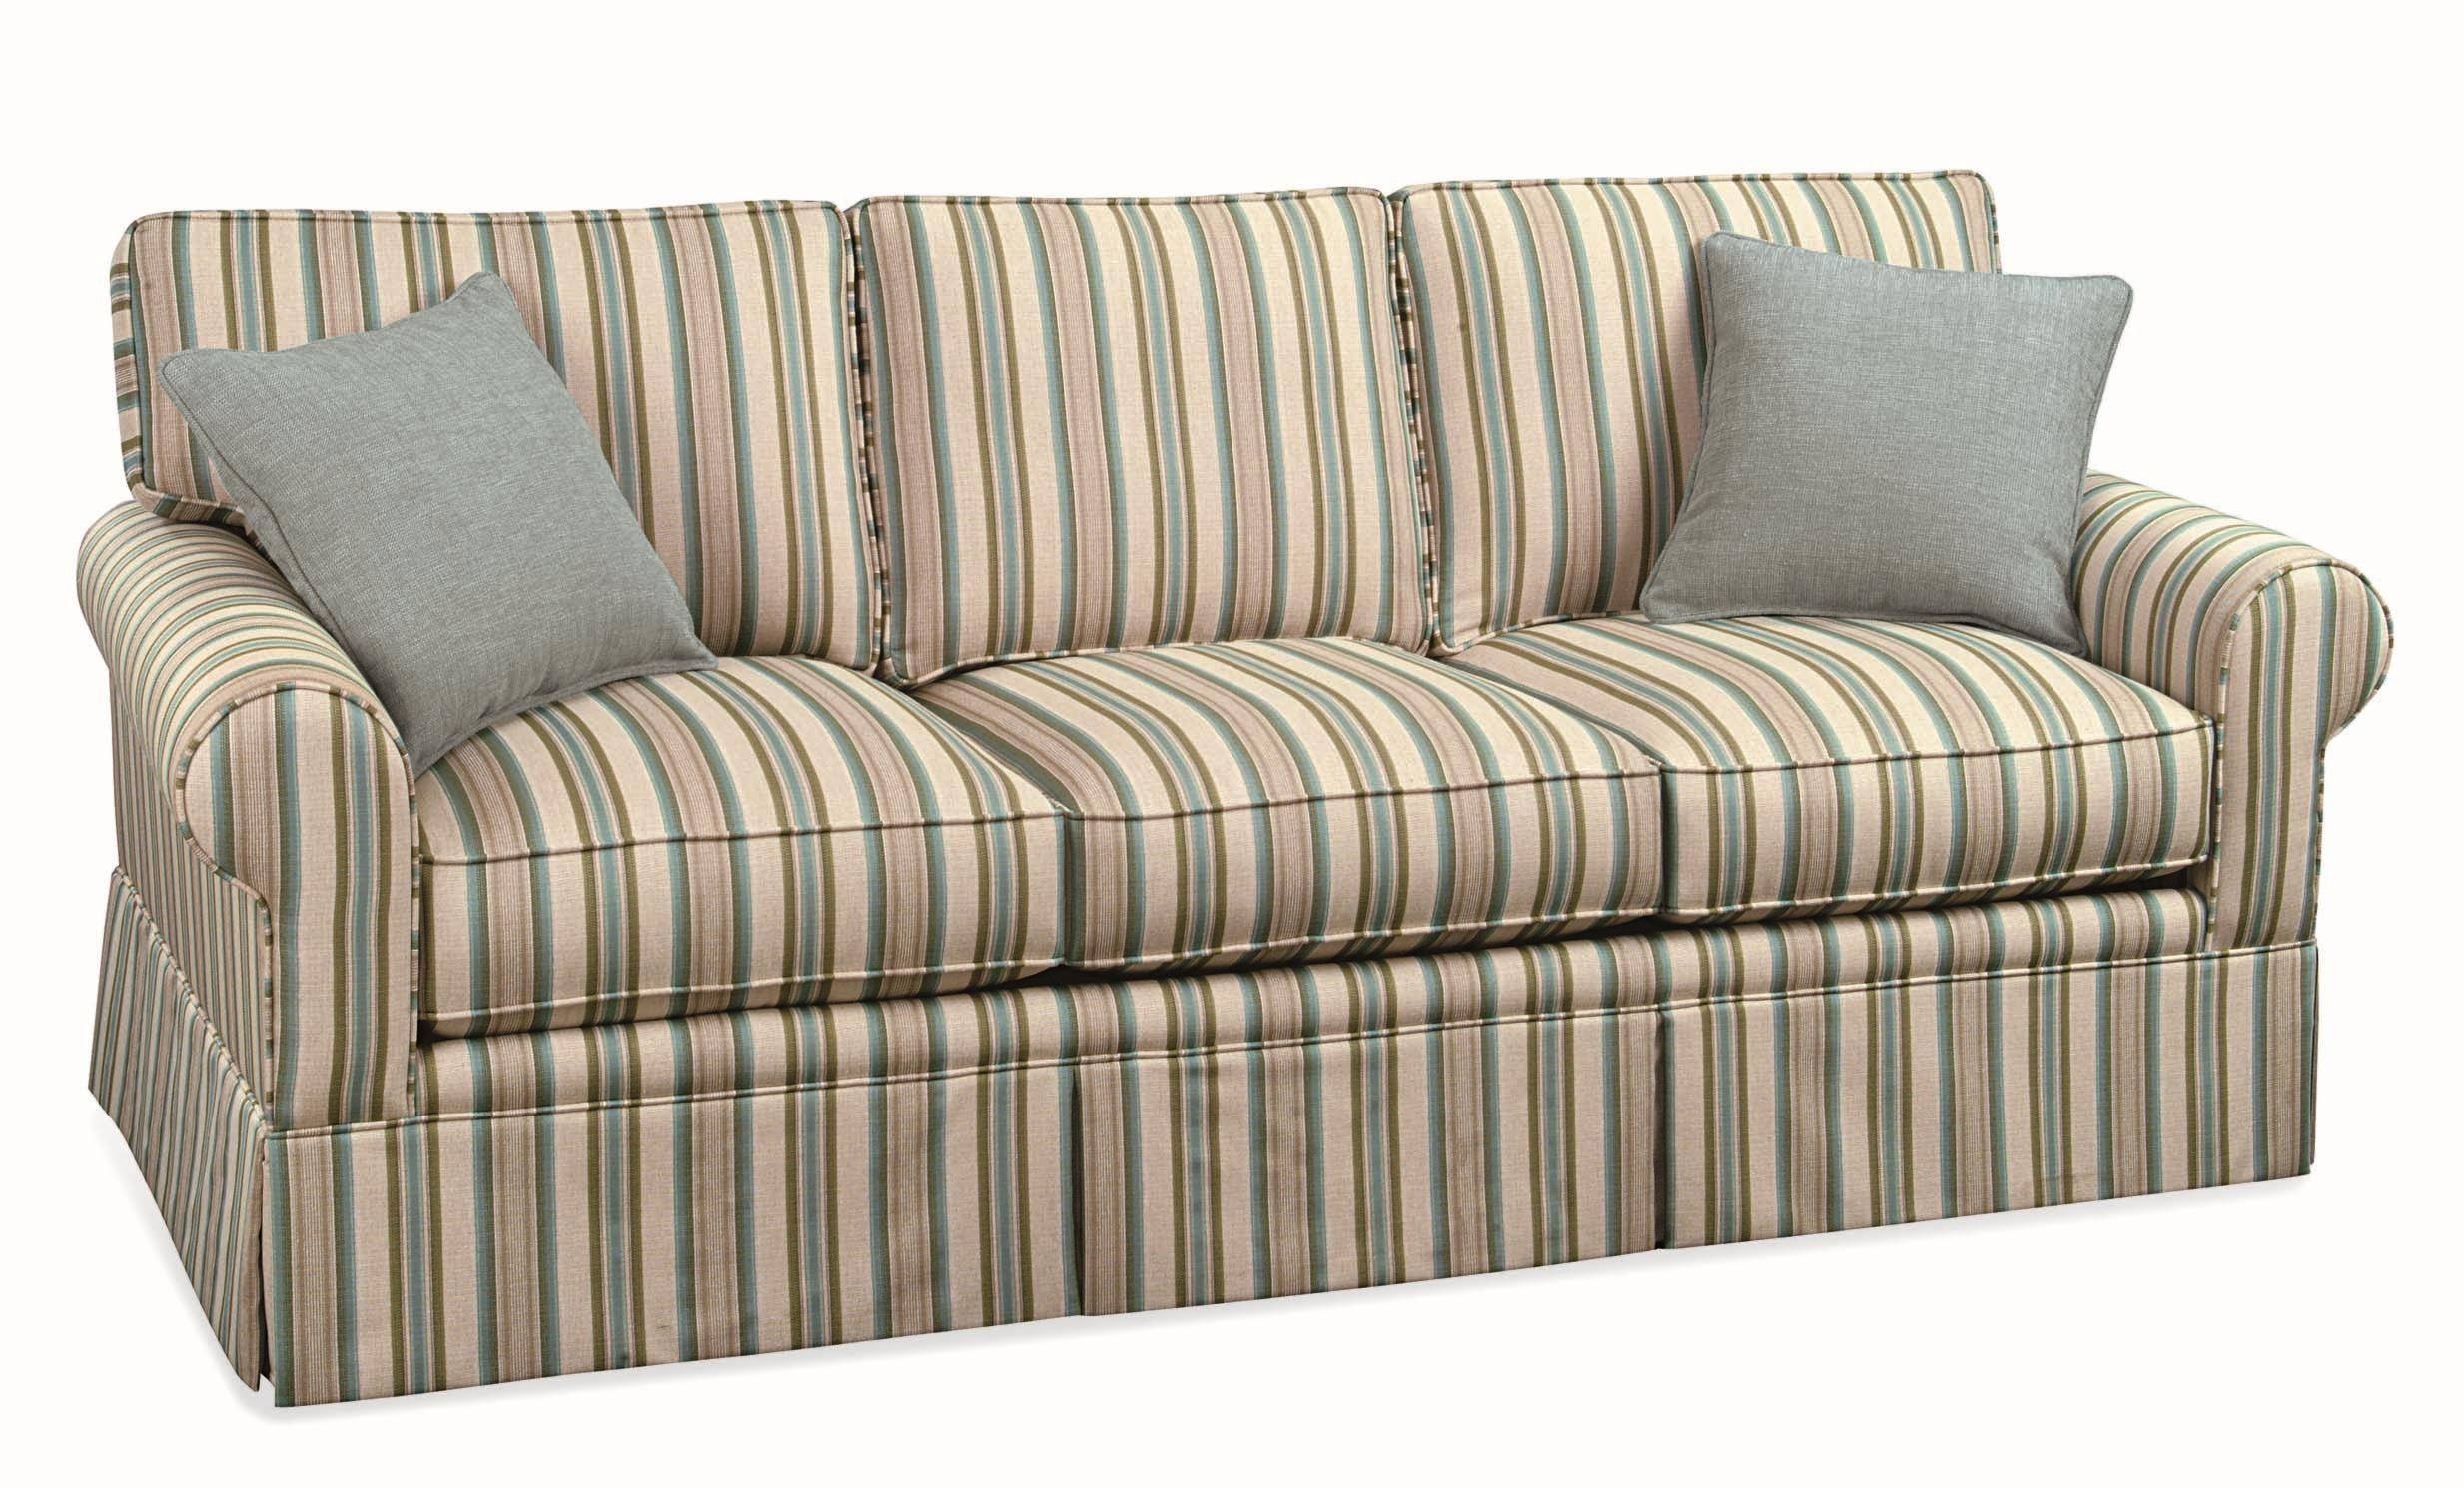 Braxton Culler Benton Casual Three Seater Sofa With Rolled Arms pertaining to Braxton Sofas (Image 3 of 15)